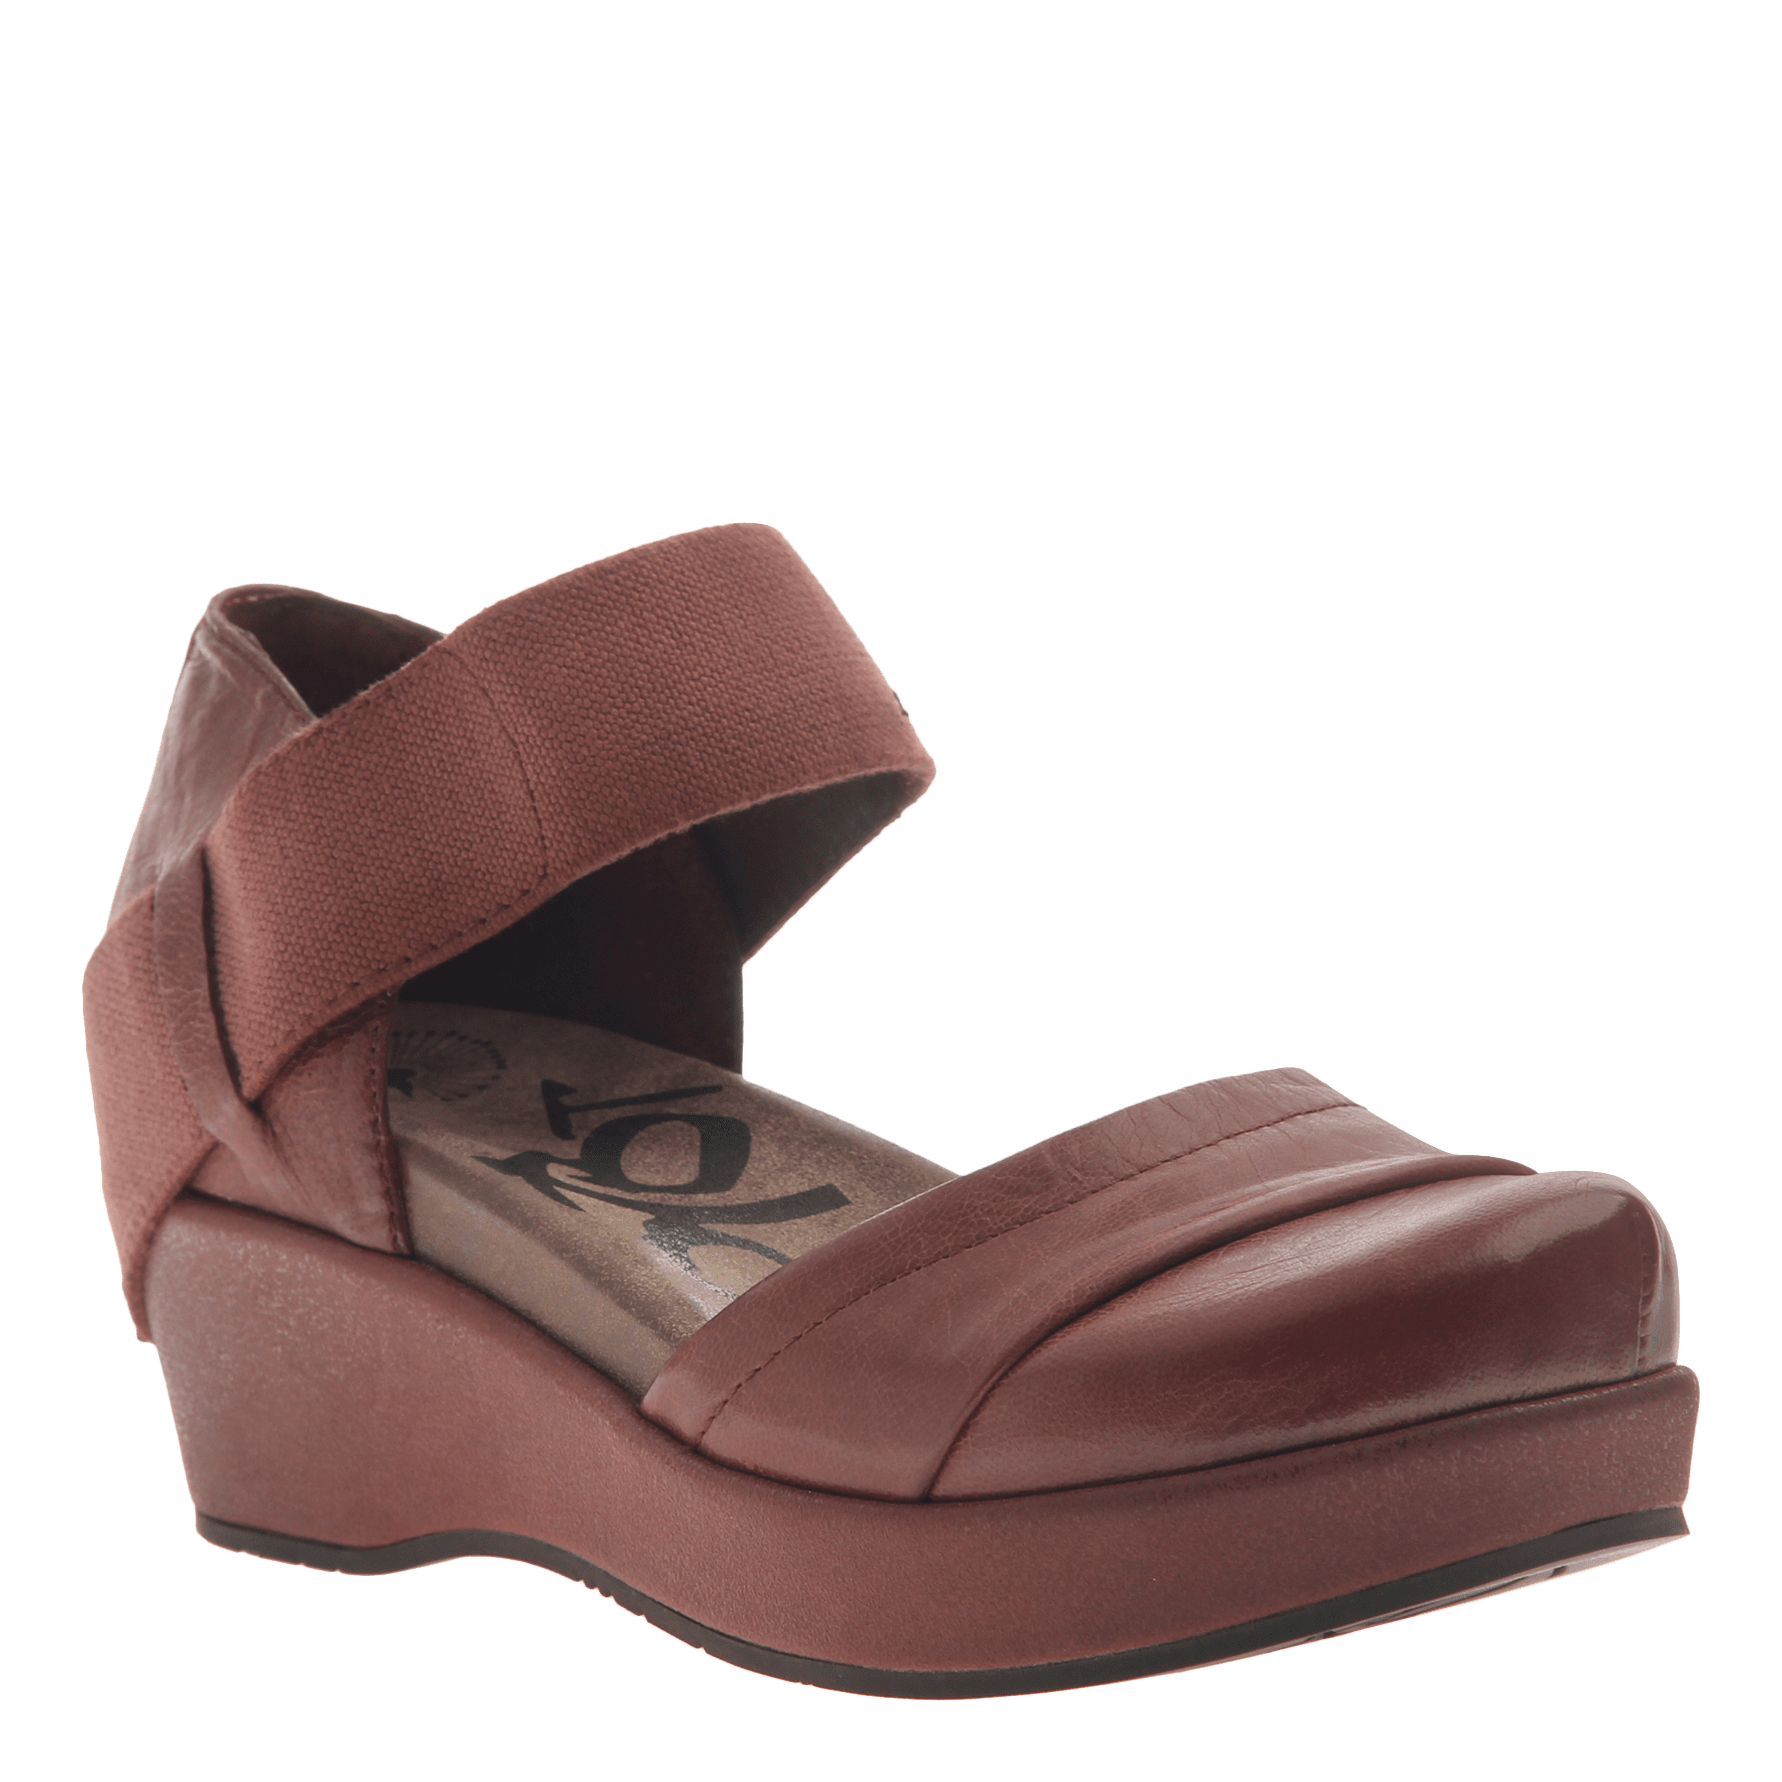 ce258414bb6 WANDER OUT in SANGRIA Closed Toe Wedges